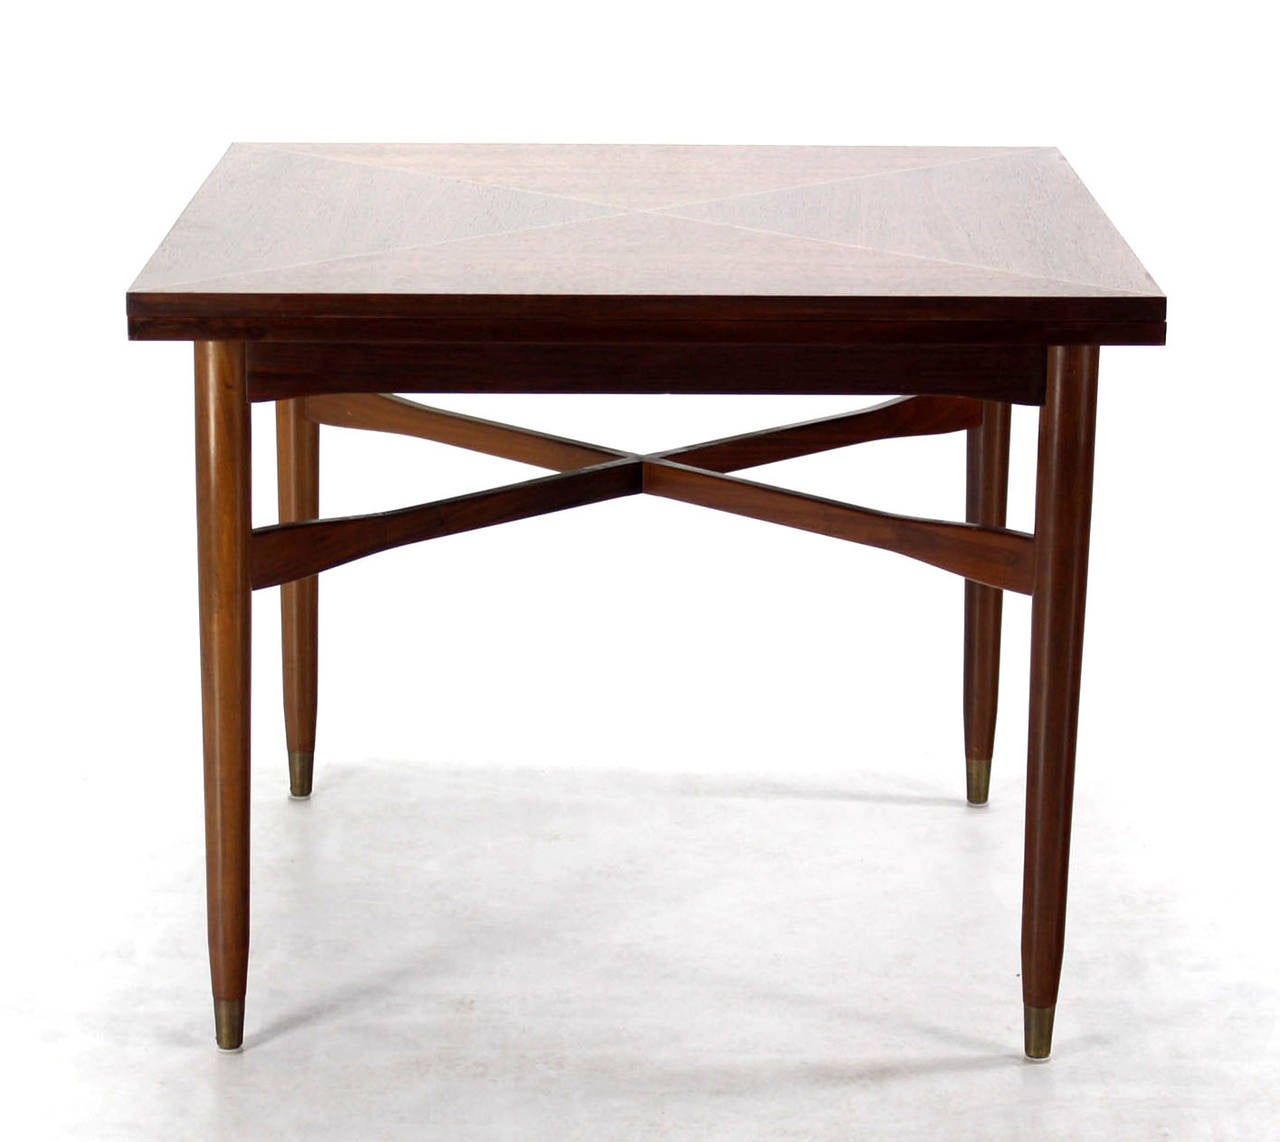 Walnut-Top with Brass Inlay, Mid-Century Modern Expandable Game Table In Excellent Condition In Rockaway, NJ